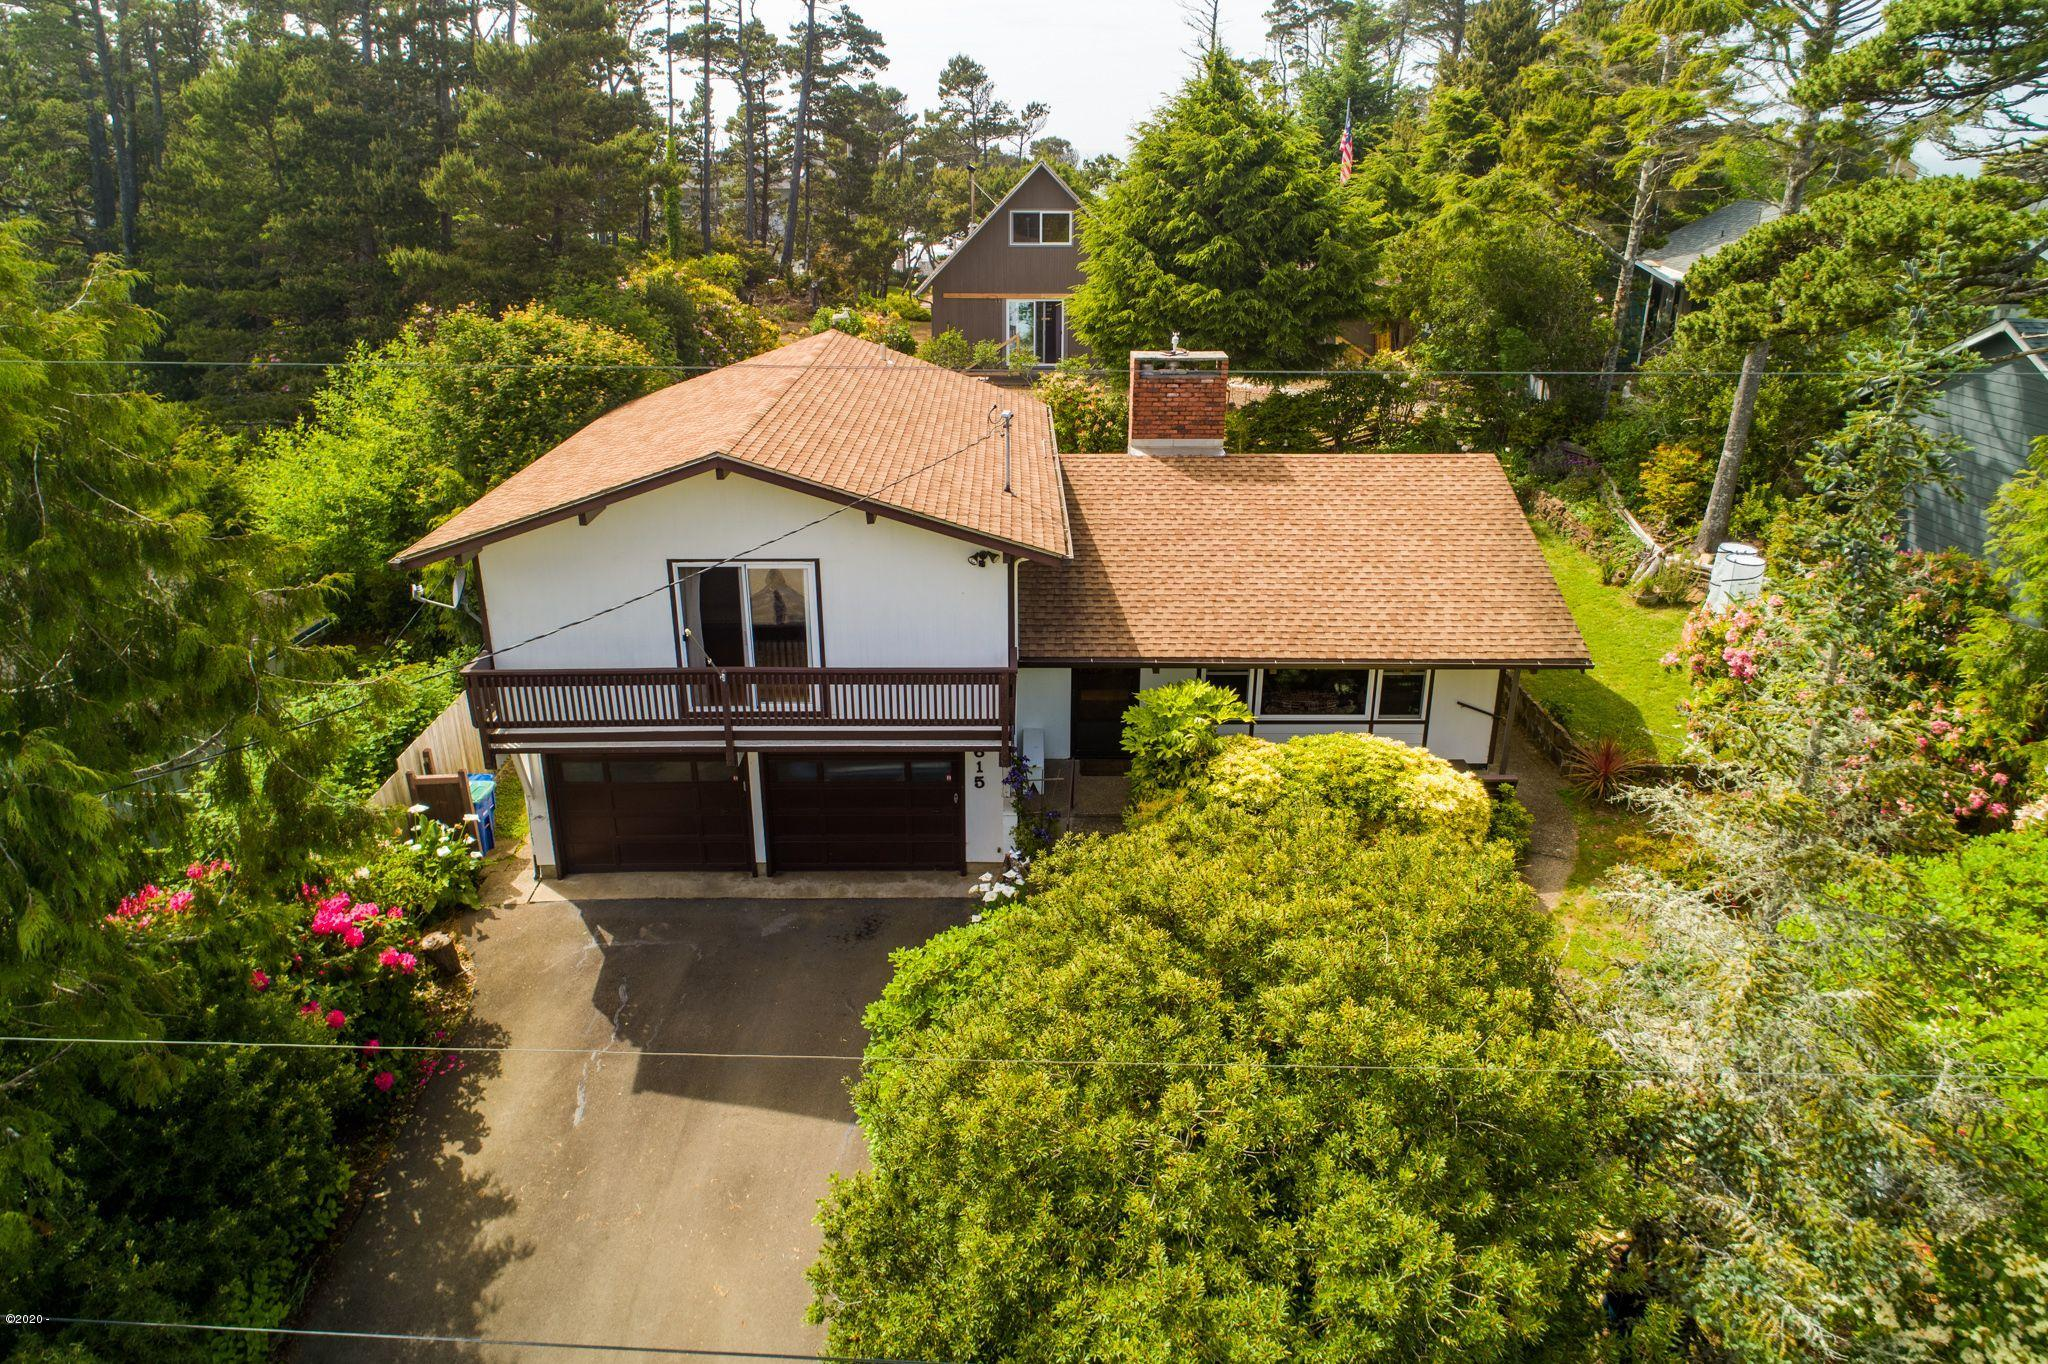 3615 Sea Mist Ave, Depoe Bay, OR 97341